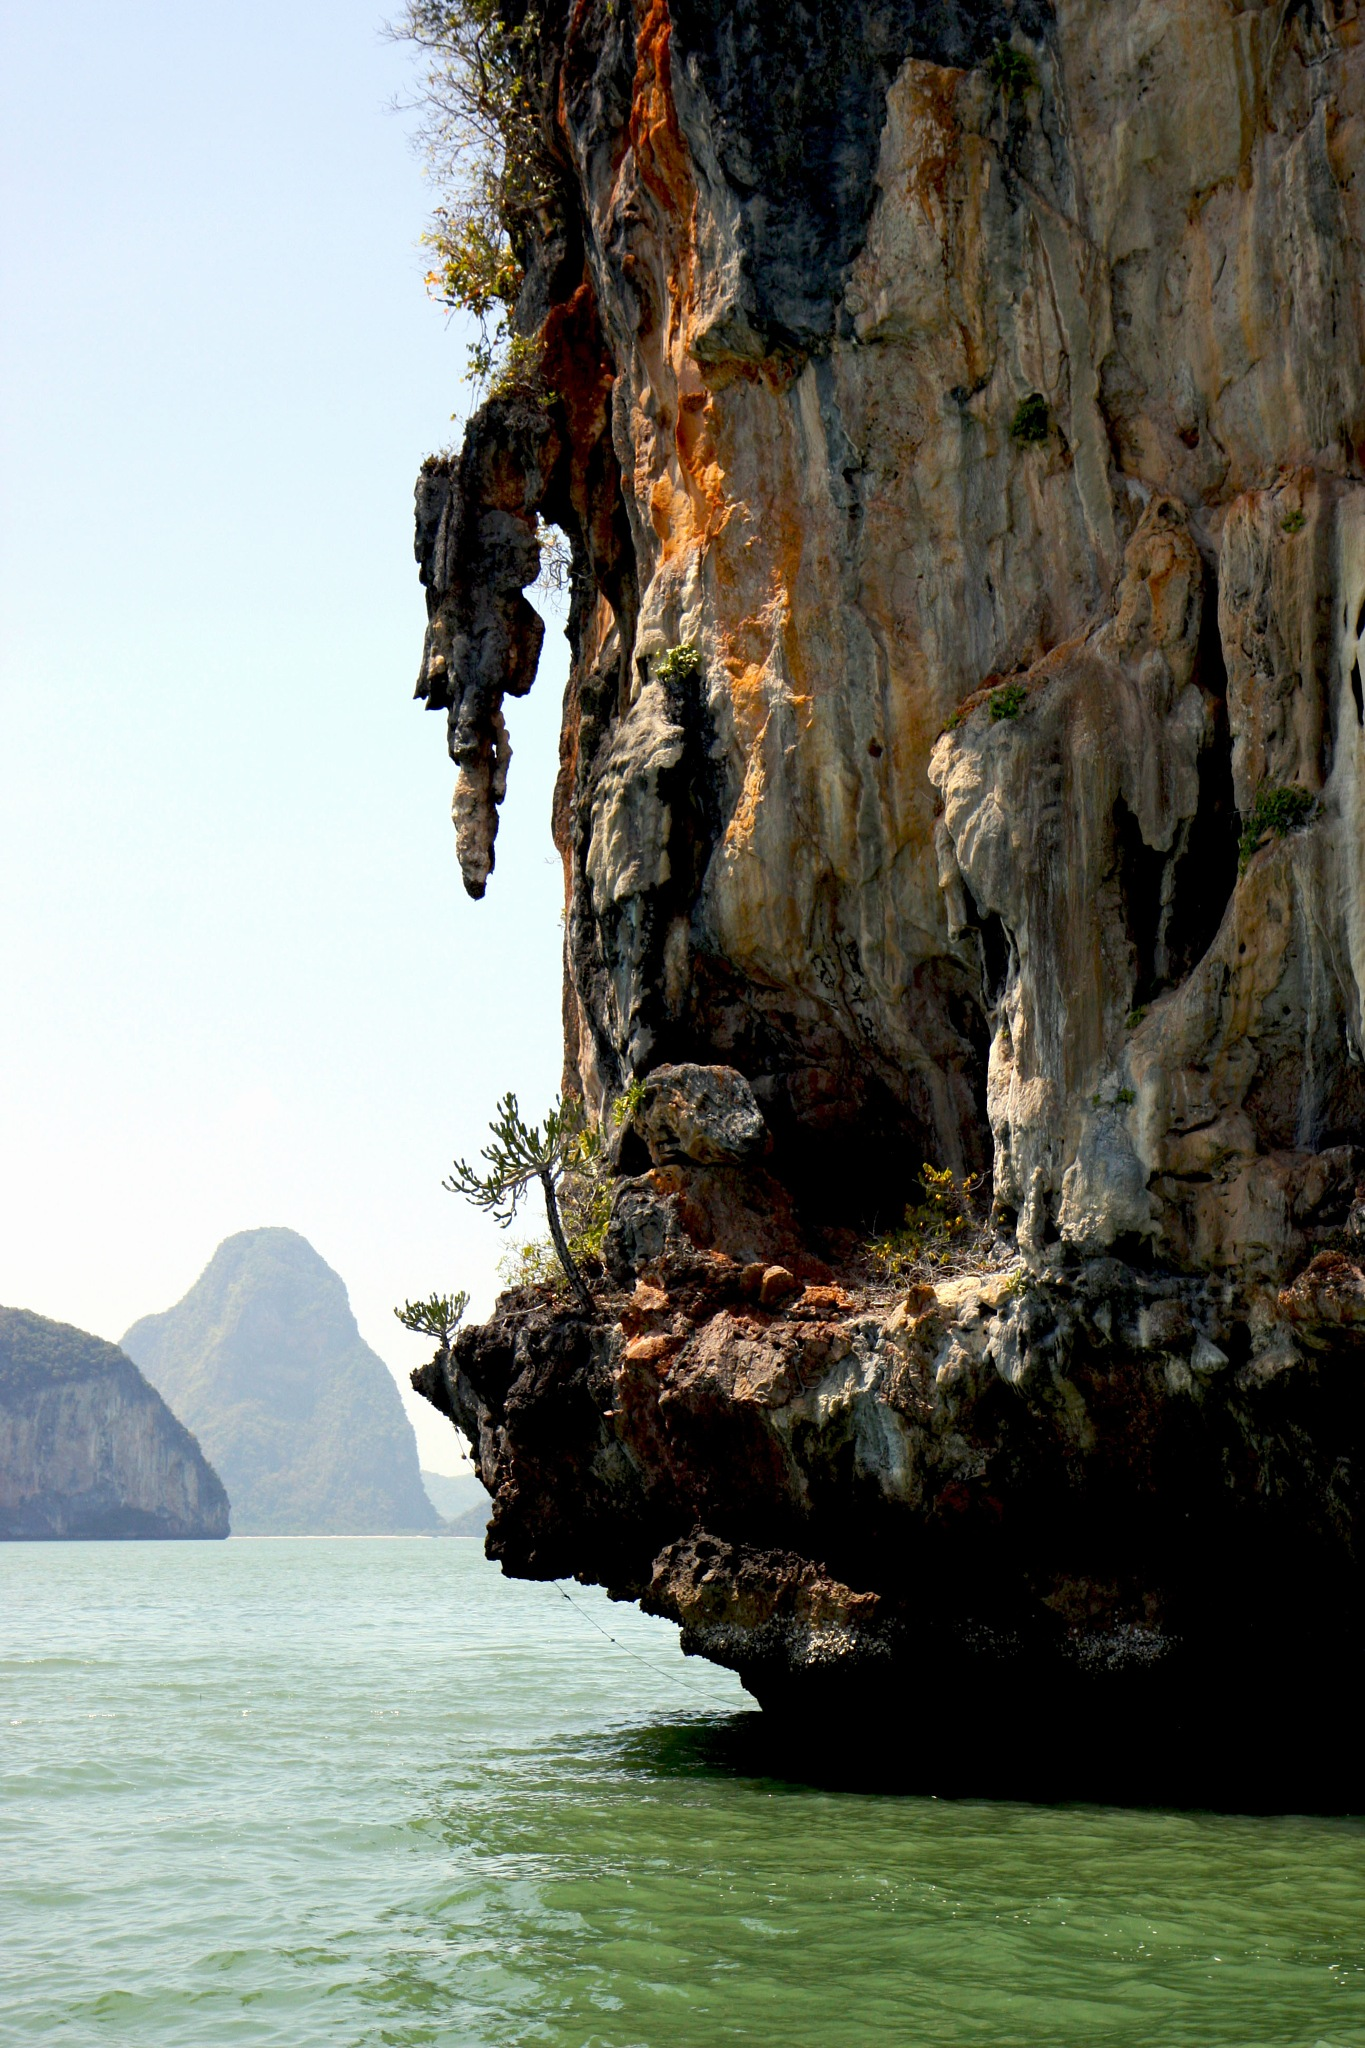 Unique Hong in Phang Nga Bay, Thailand by Wendy Farrington